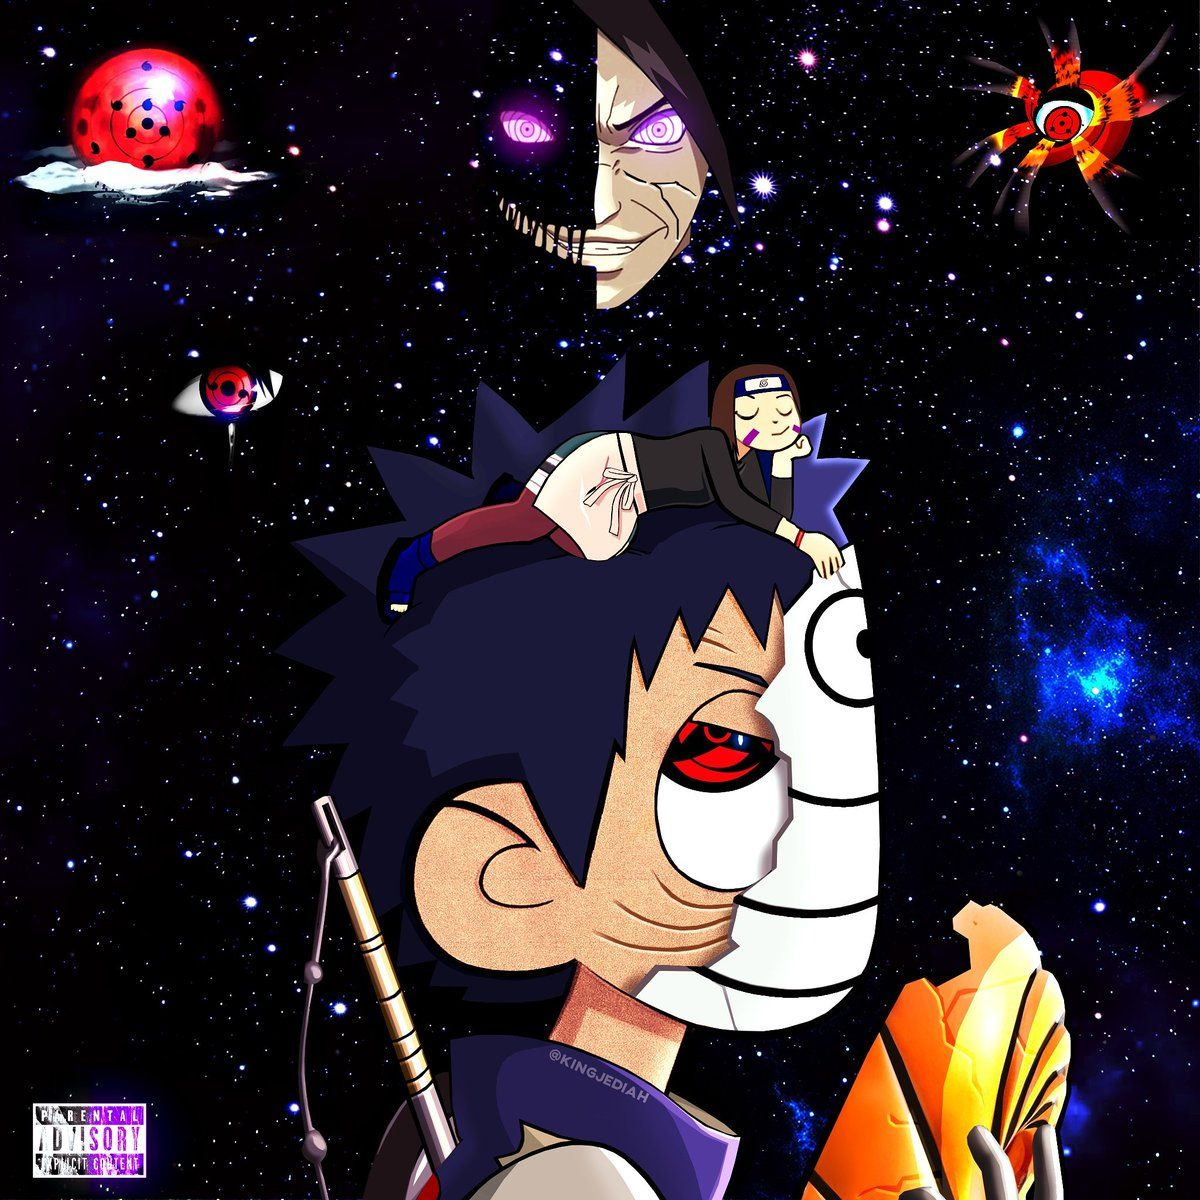 Naruto X Luv Vs The World Wallpapers Wallpaper Cave Lil uzi vert s hd with a maximum resolution of 2560x1440 and related vert or wallpapers wallpapers. naruto x luv vs the world wallpapers